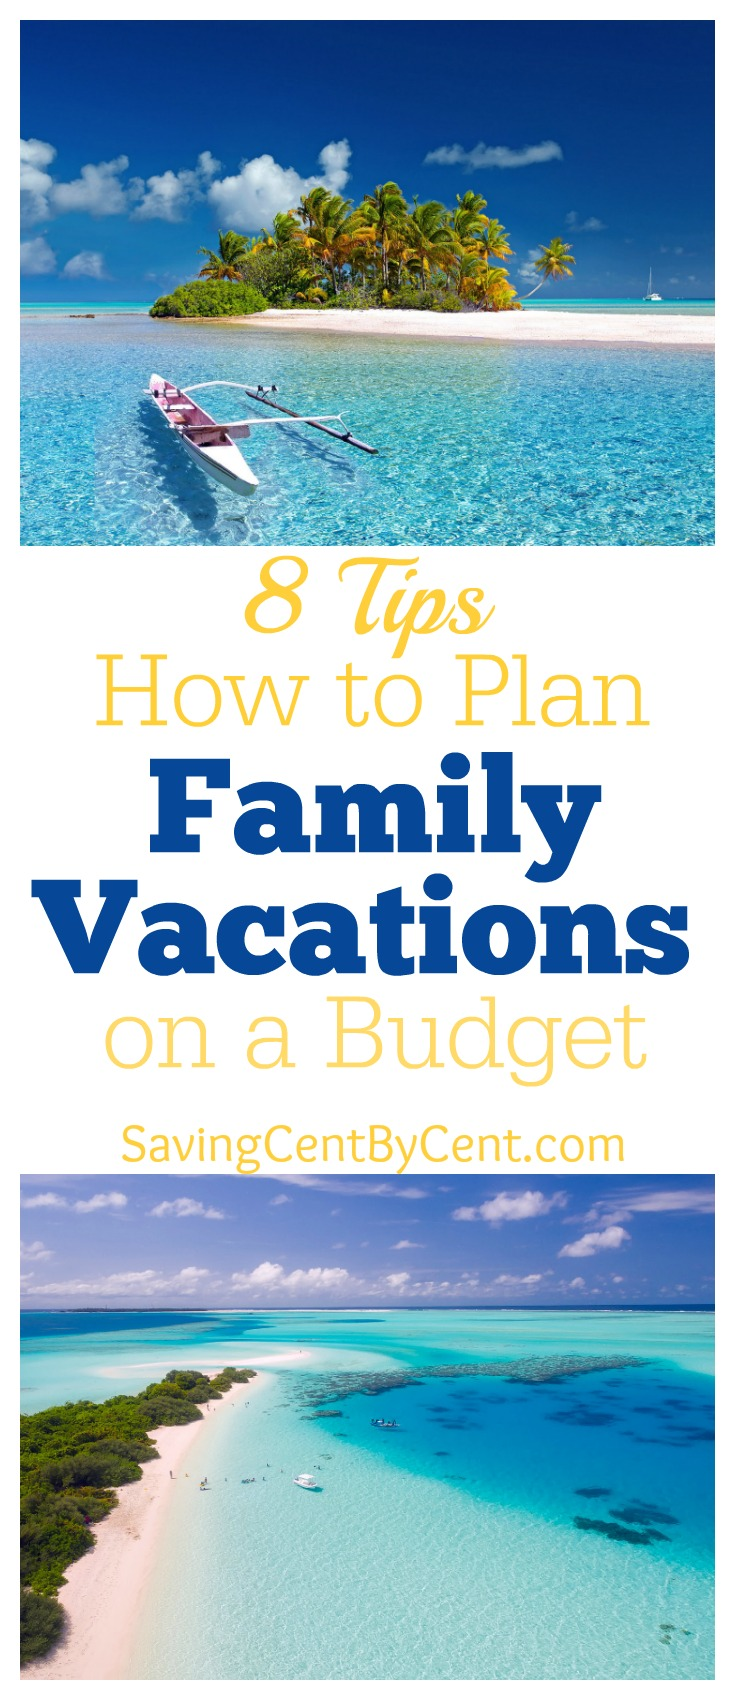 How to plan family vacations on a budget